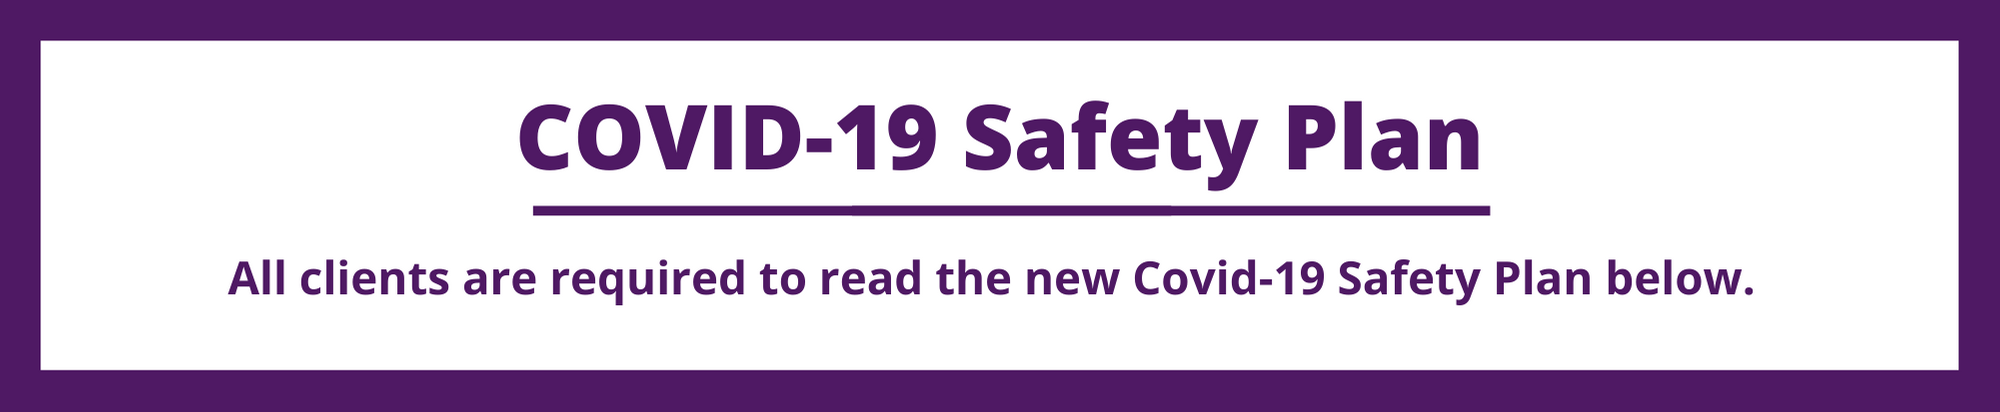 Covid Safety Plan Banner